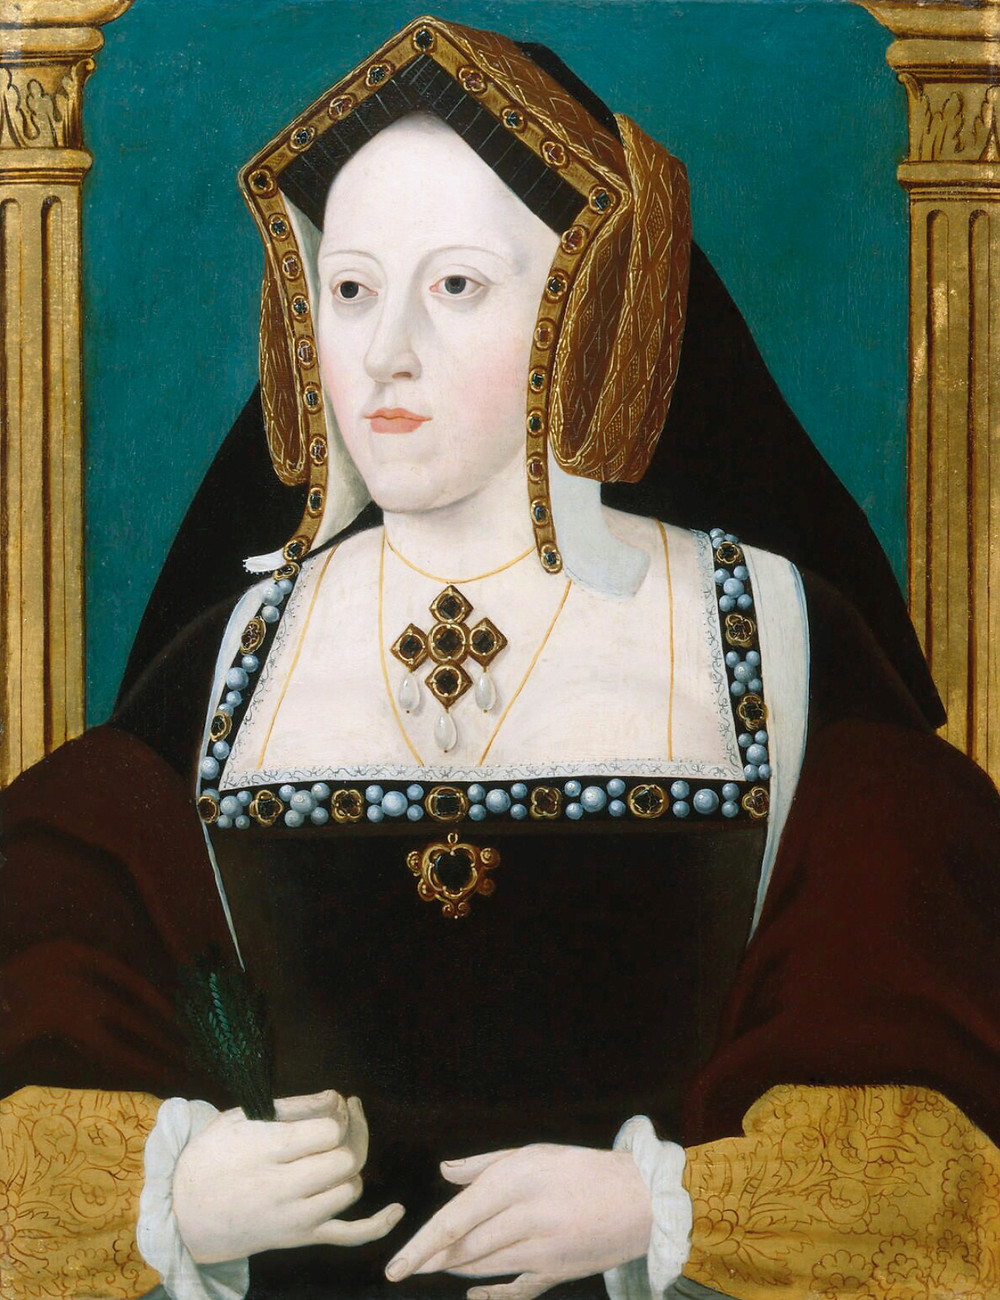 Catherine of Aragon, Queen of England as the first wife of Henry VIII. portrait painting